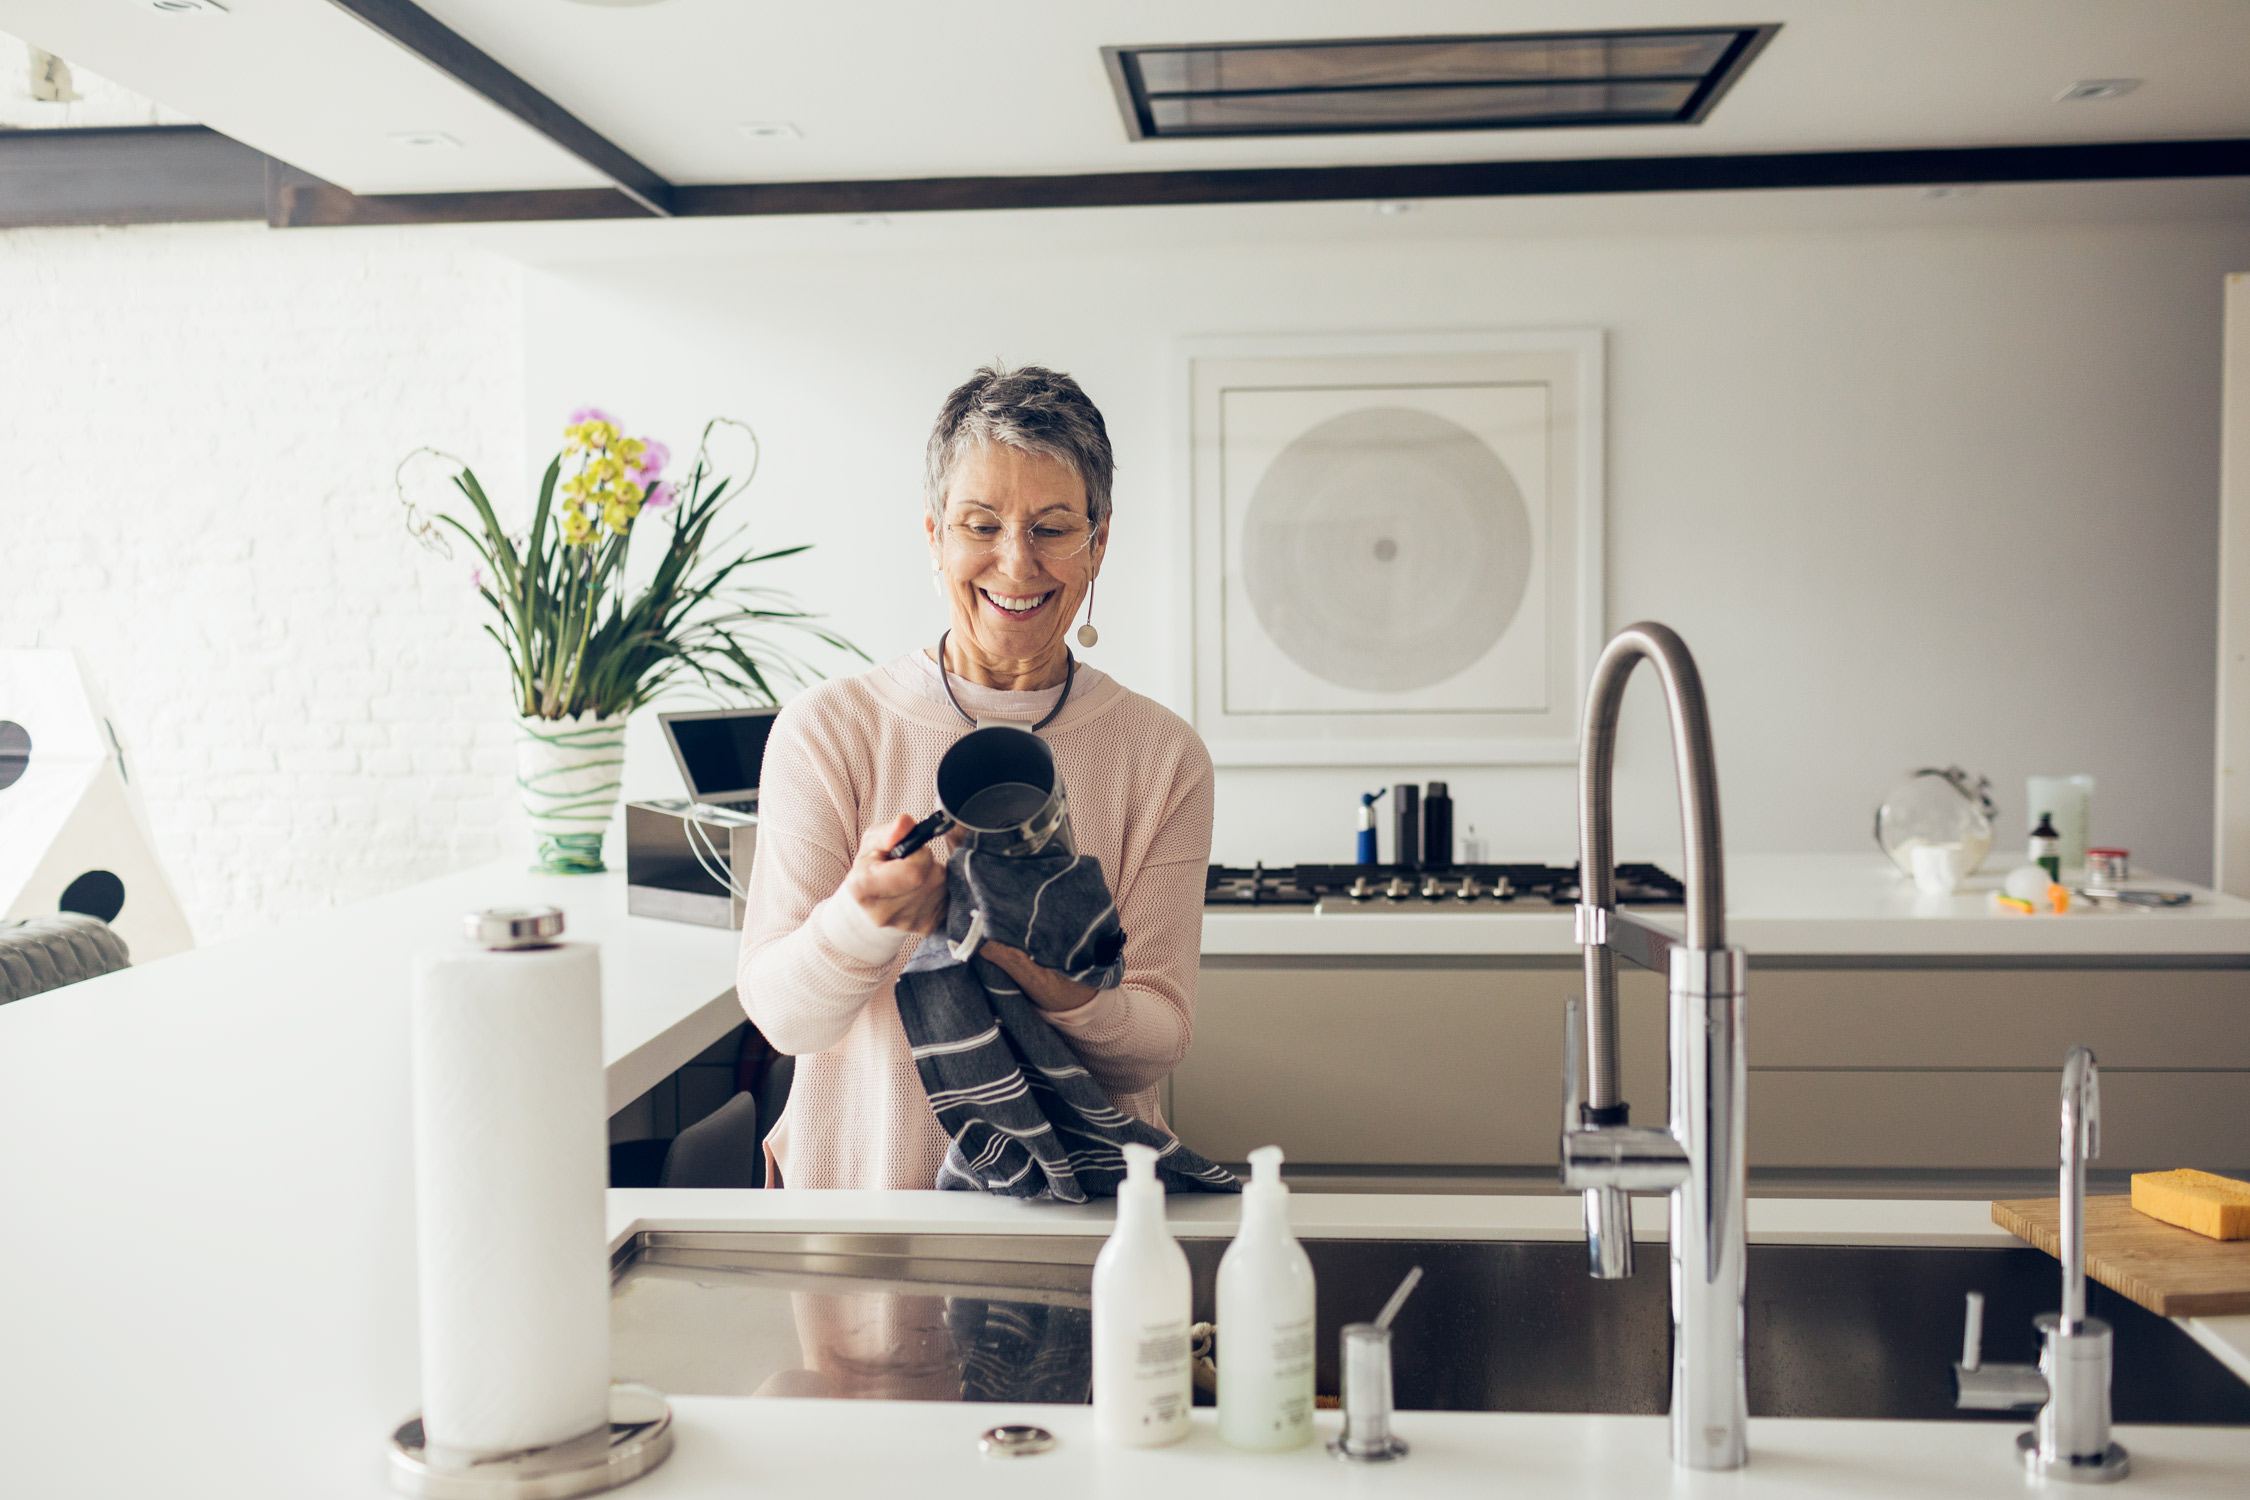 older woman washing dishes in kitchen, washington dc commercial photography